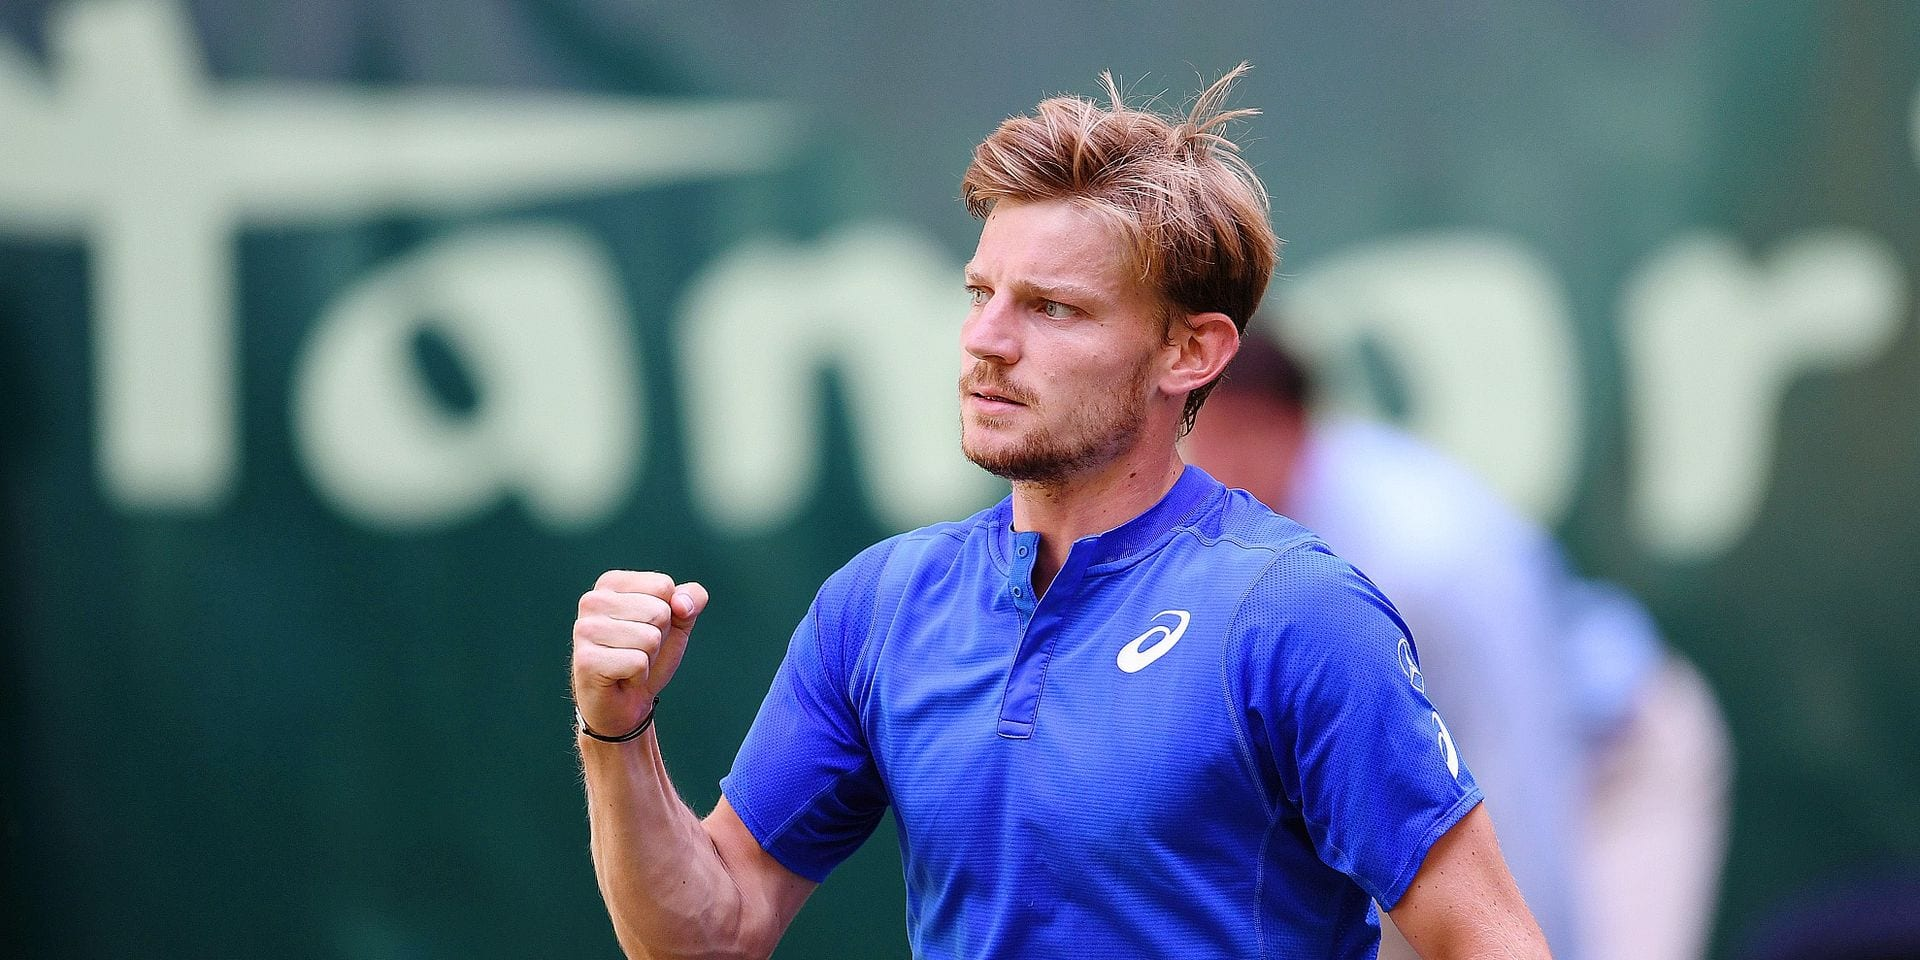 David Goffin from Belgium reacts during his match against Alexander Zverev from Germany at the ATP tennis tournament in Halle, western Germany, on June 21, 2019. (Photo by CARMEN JASPERSEN / AFP)